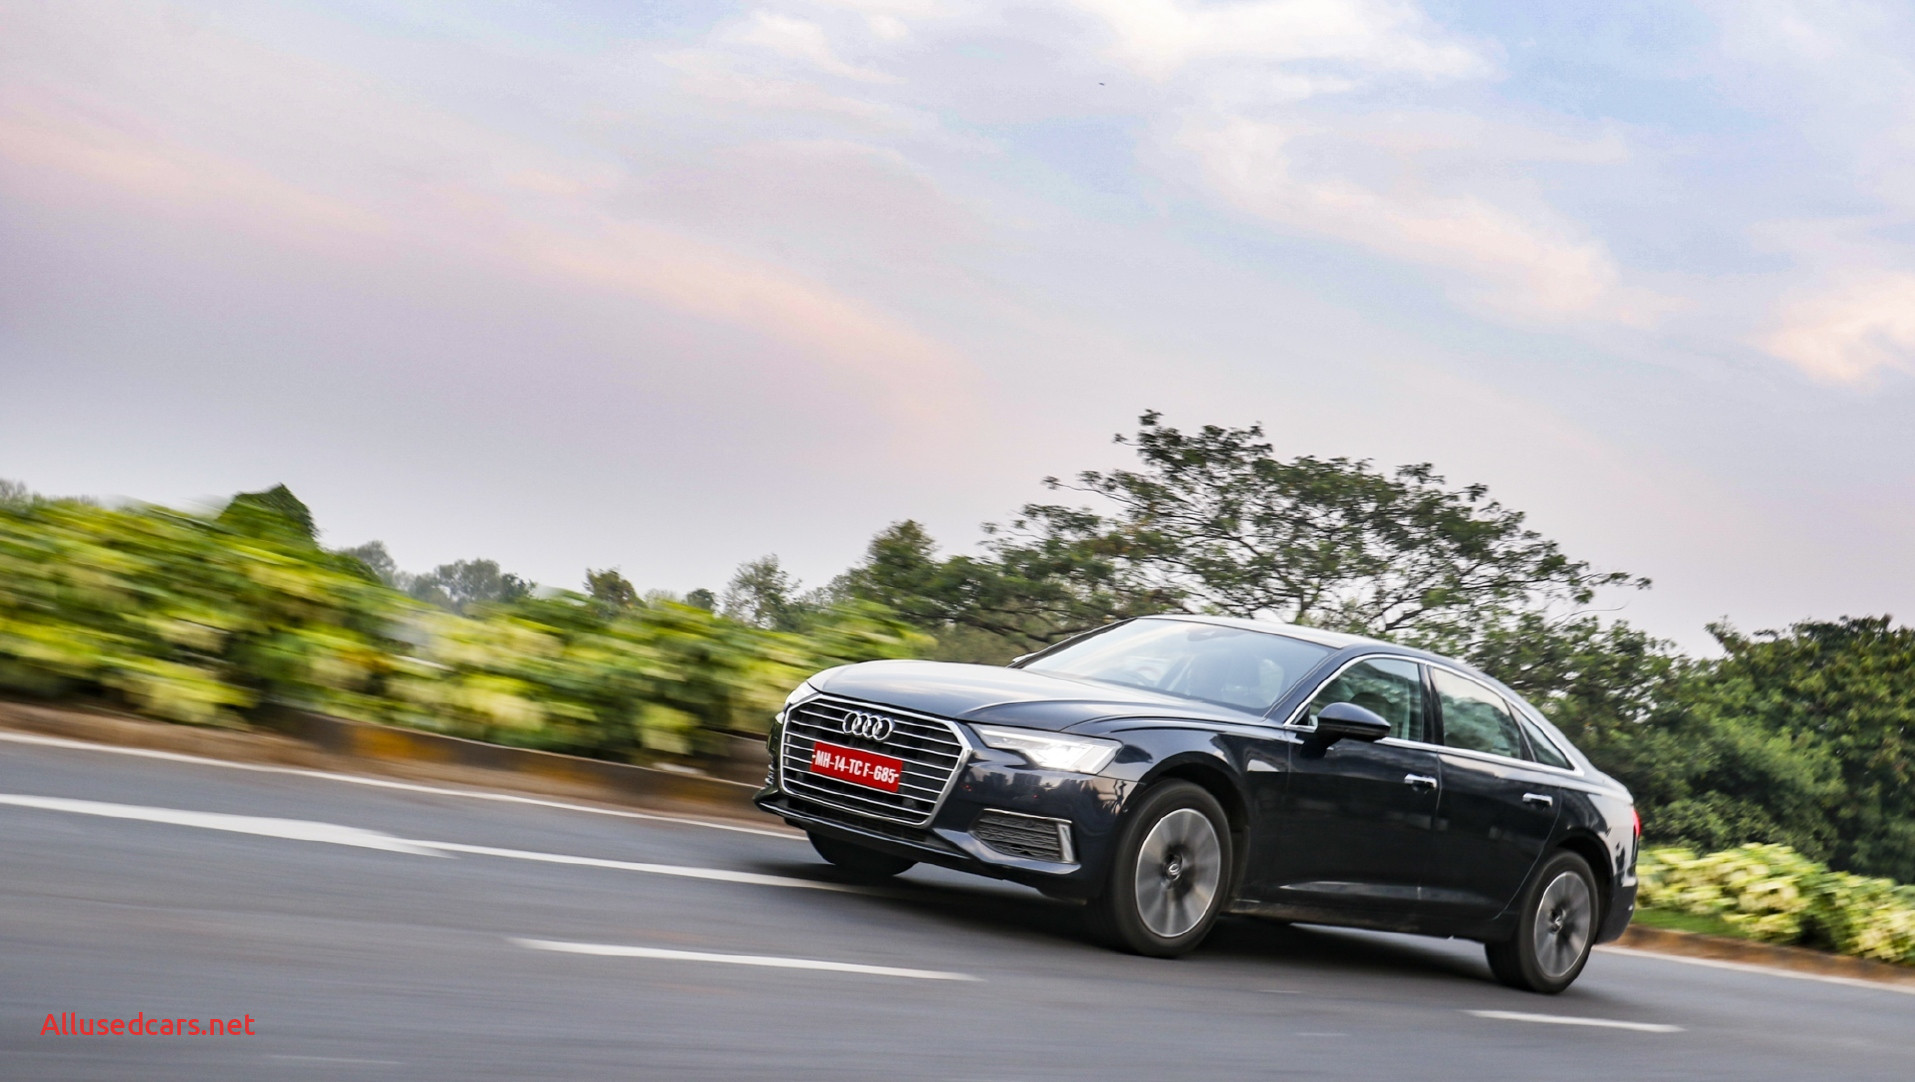 Used Cars for Sale In Chennai Fresh Audi A6 Bs6 Price December Fers Colours